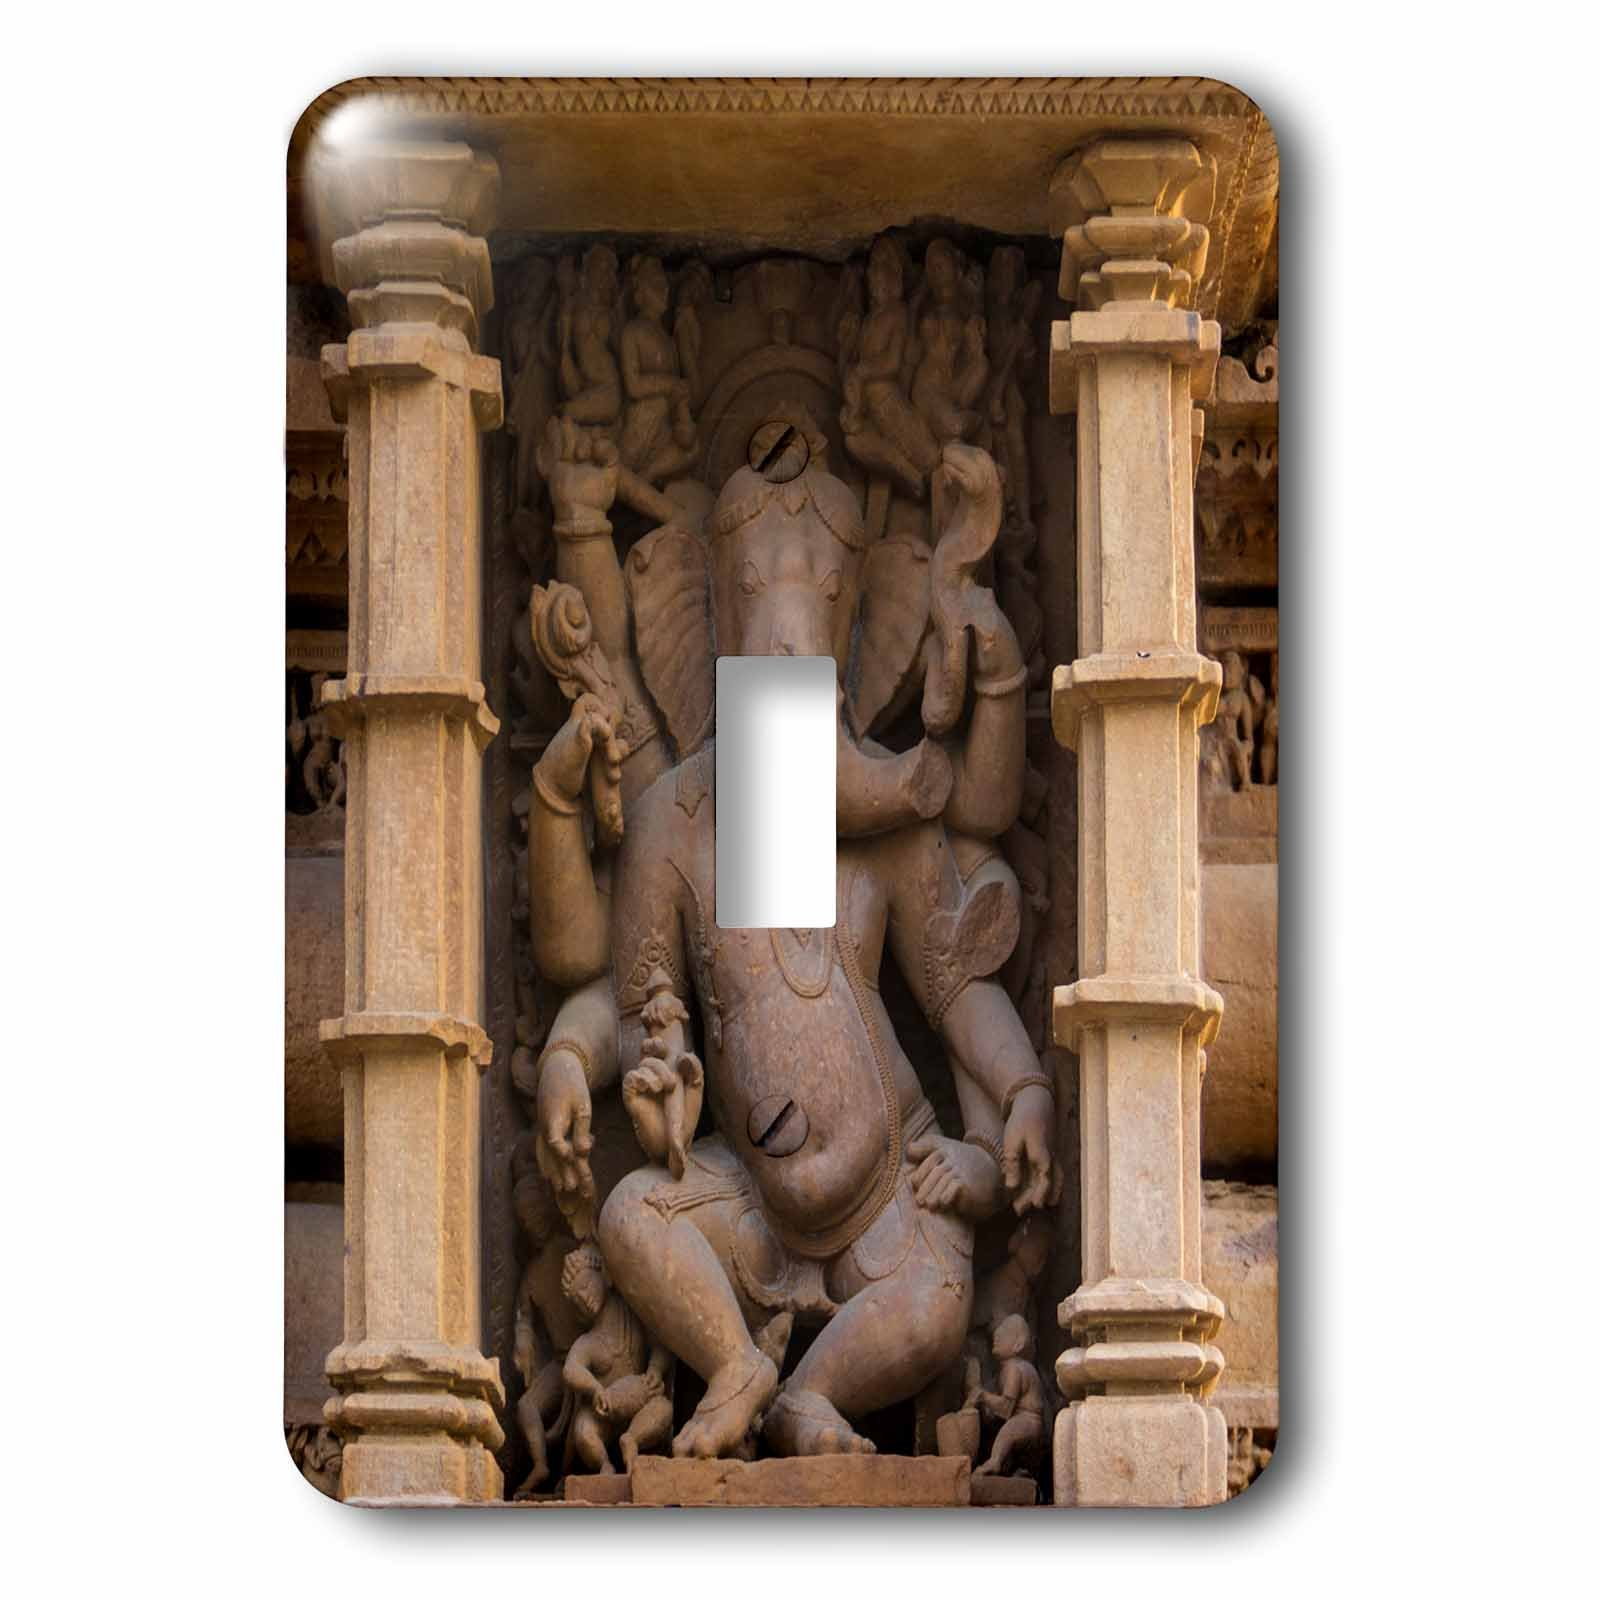 3dRose Danita Delimont - Temples - India. Hindu temples at Khajuraho, elephant deity carving. - Light Switch Covers - single toggle switch (lsp_276793_1)